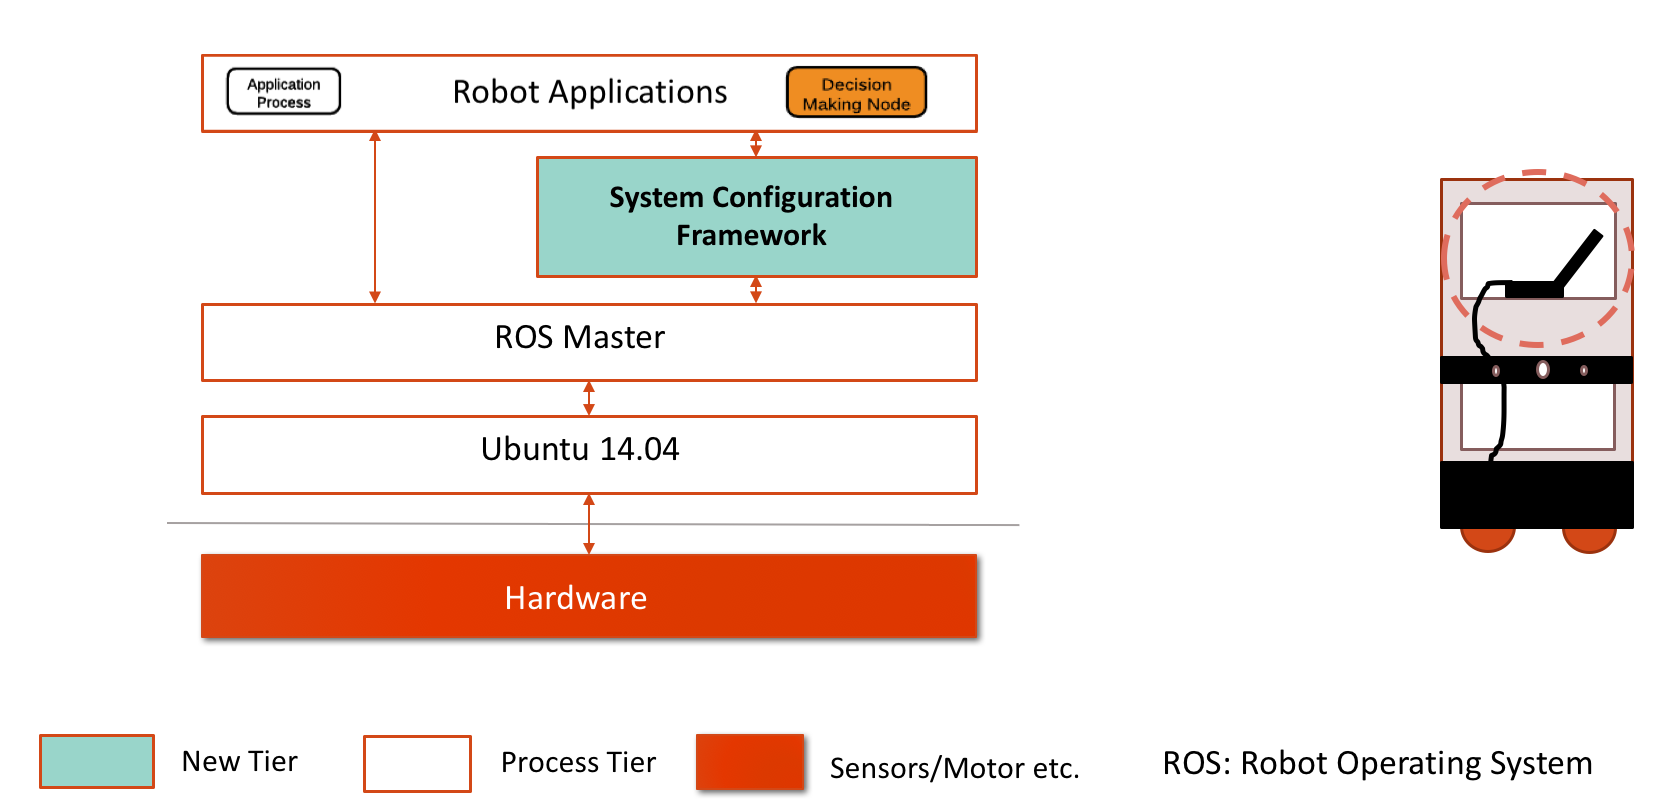 A Reconfiguration Framework for ROS (Robot Operating System) running